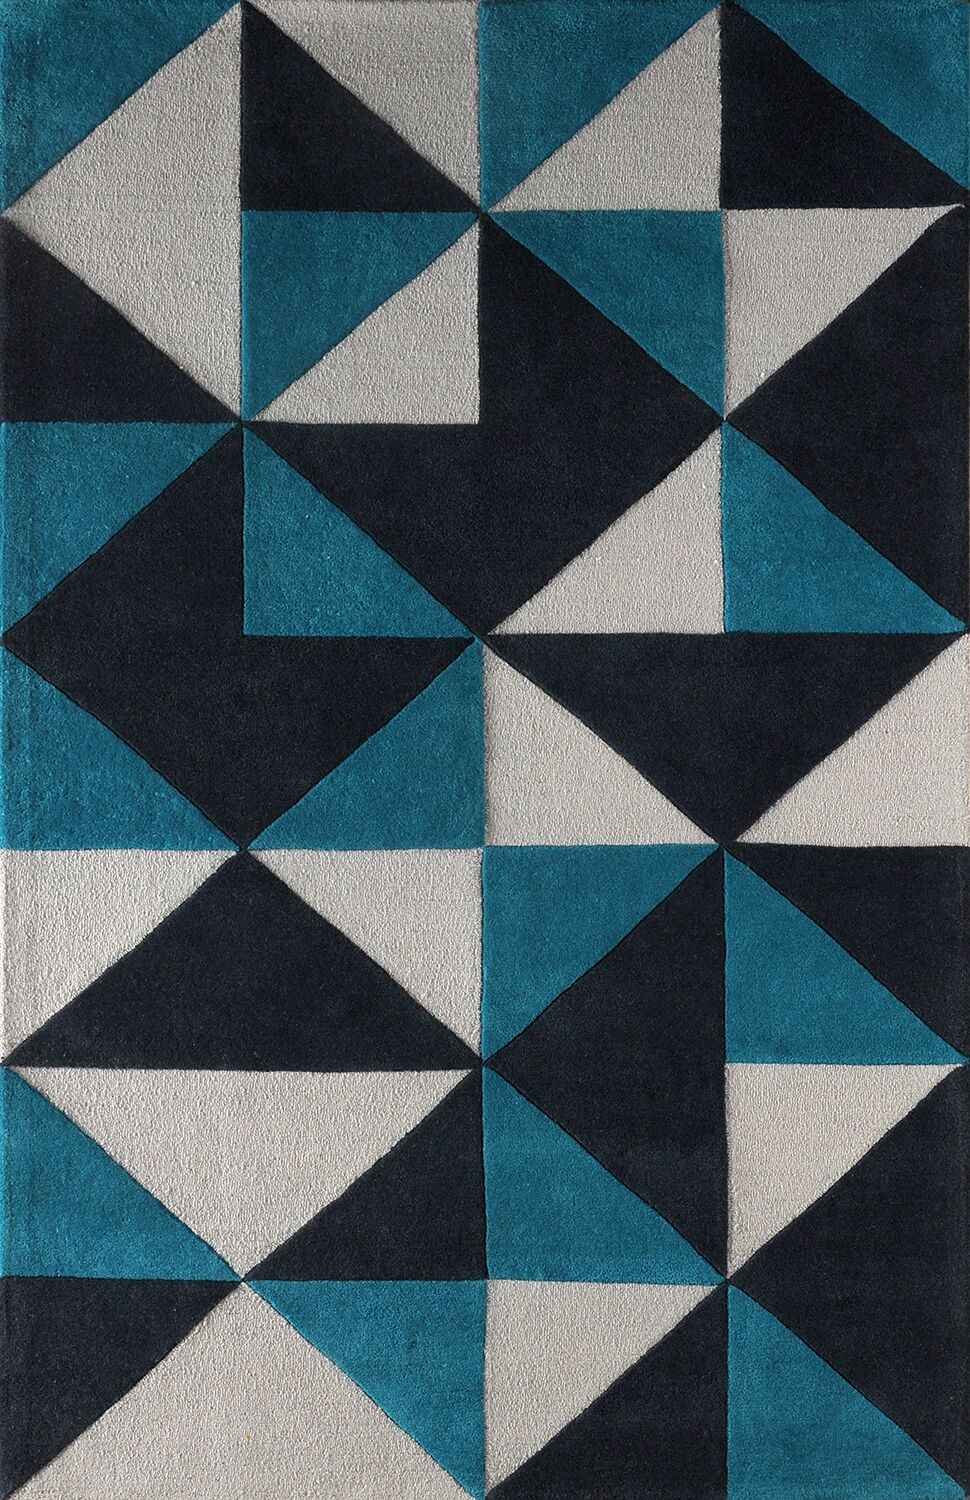 Lueras Hand-Tufted Gray/Blue Area Rug Rug Size: Rectangle 8' x 10'